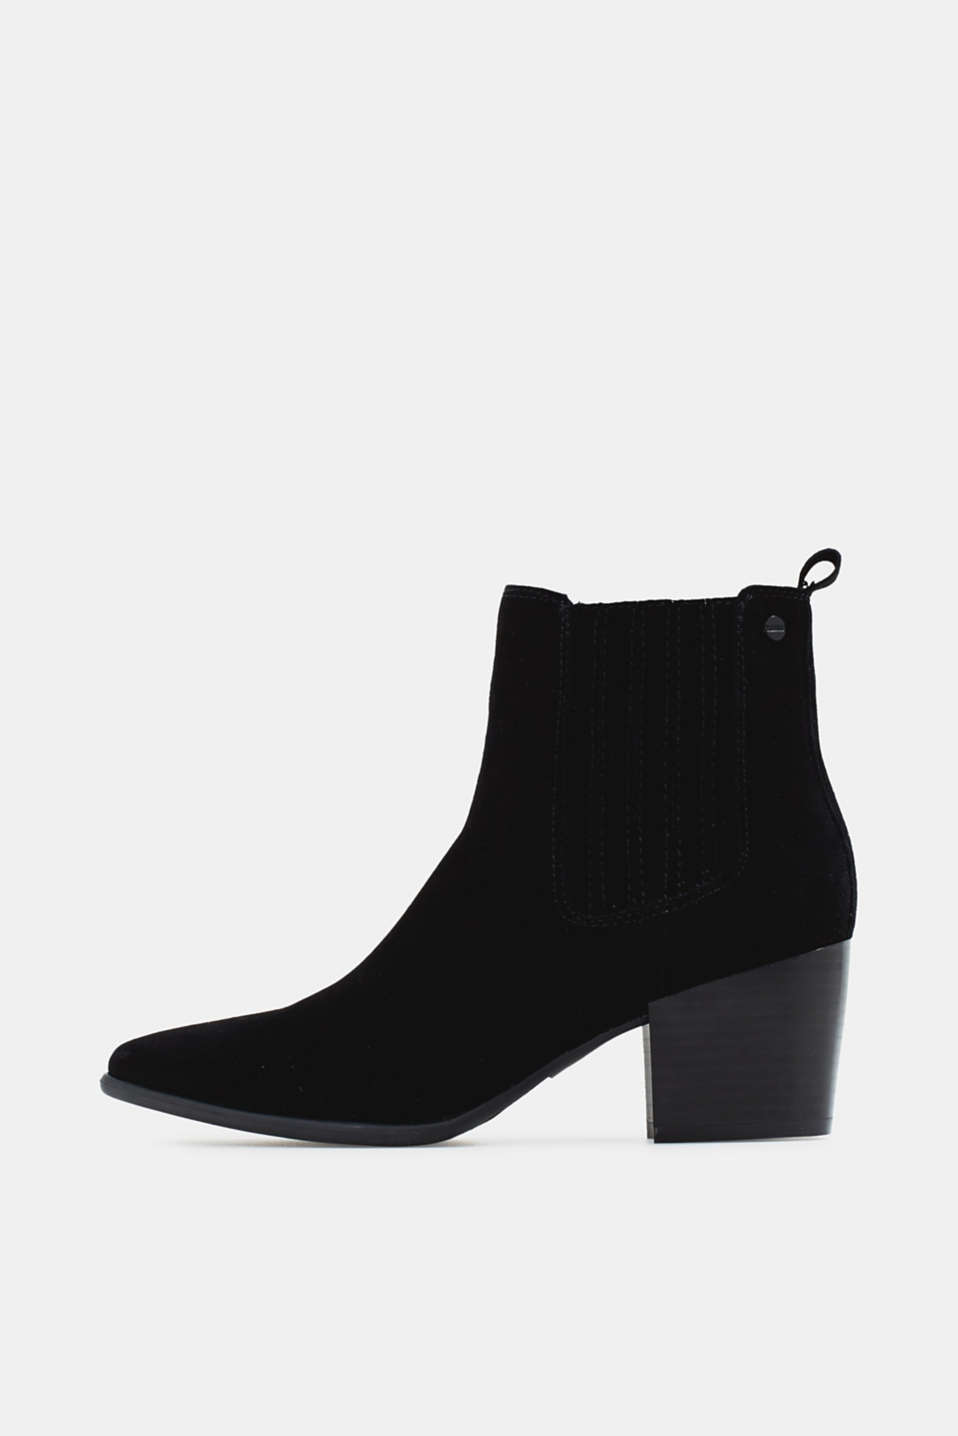 Esprit - Ankle boots made of 100% genuine leather